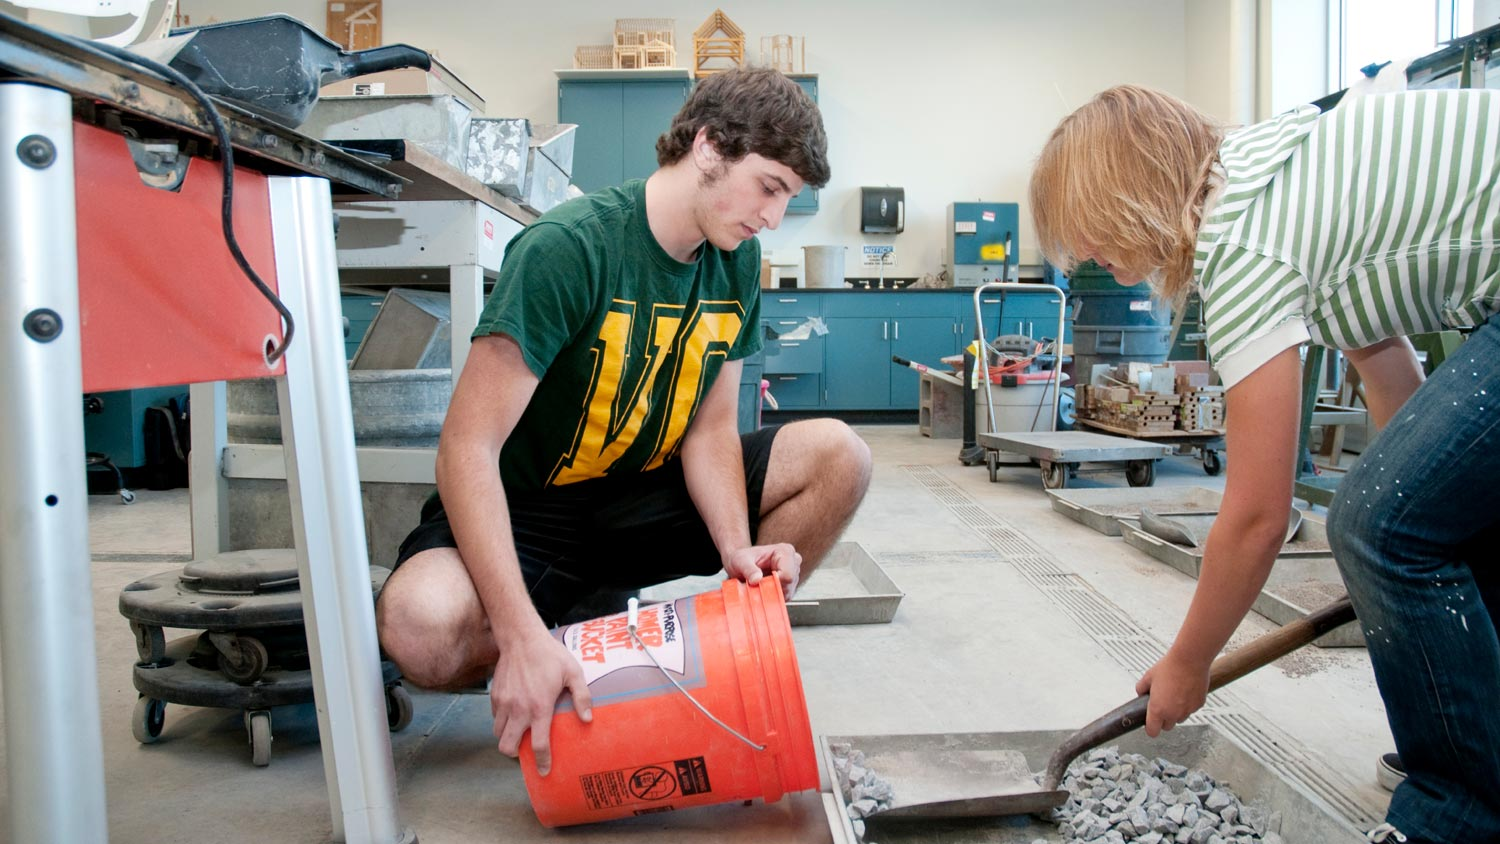 Two students scooping small stones into a 5 gallon bucket